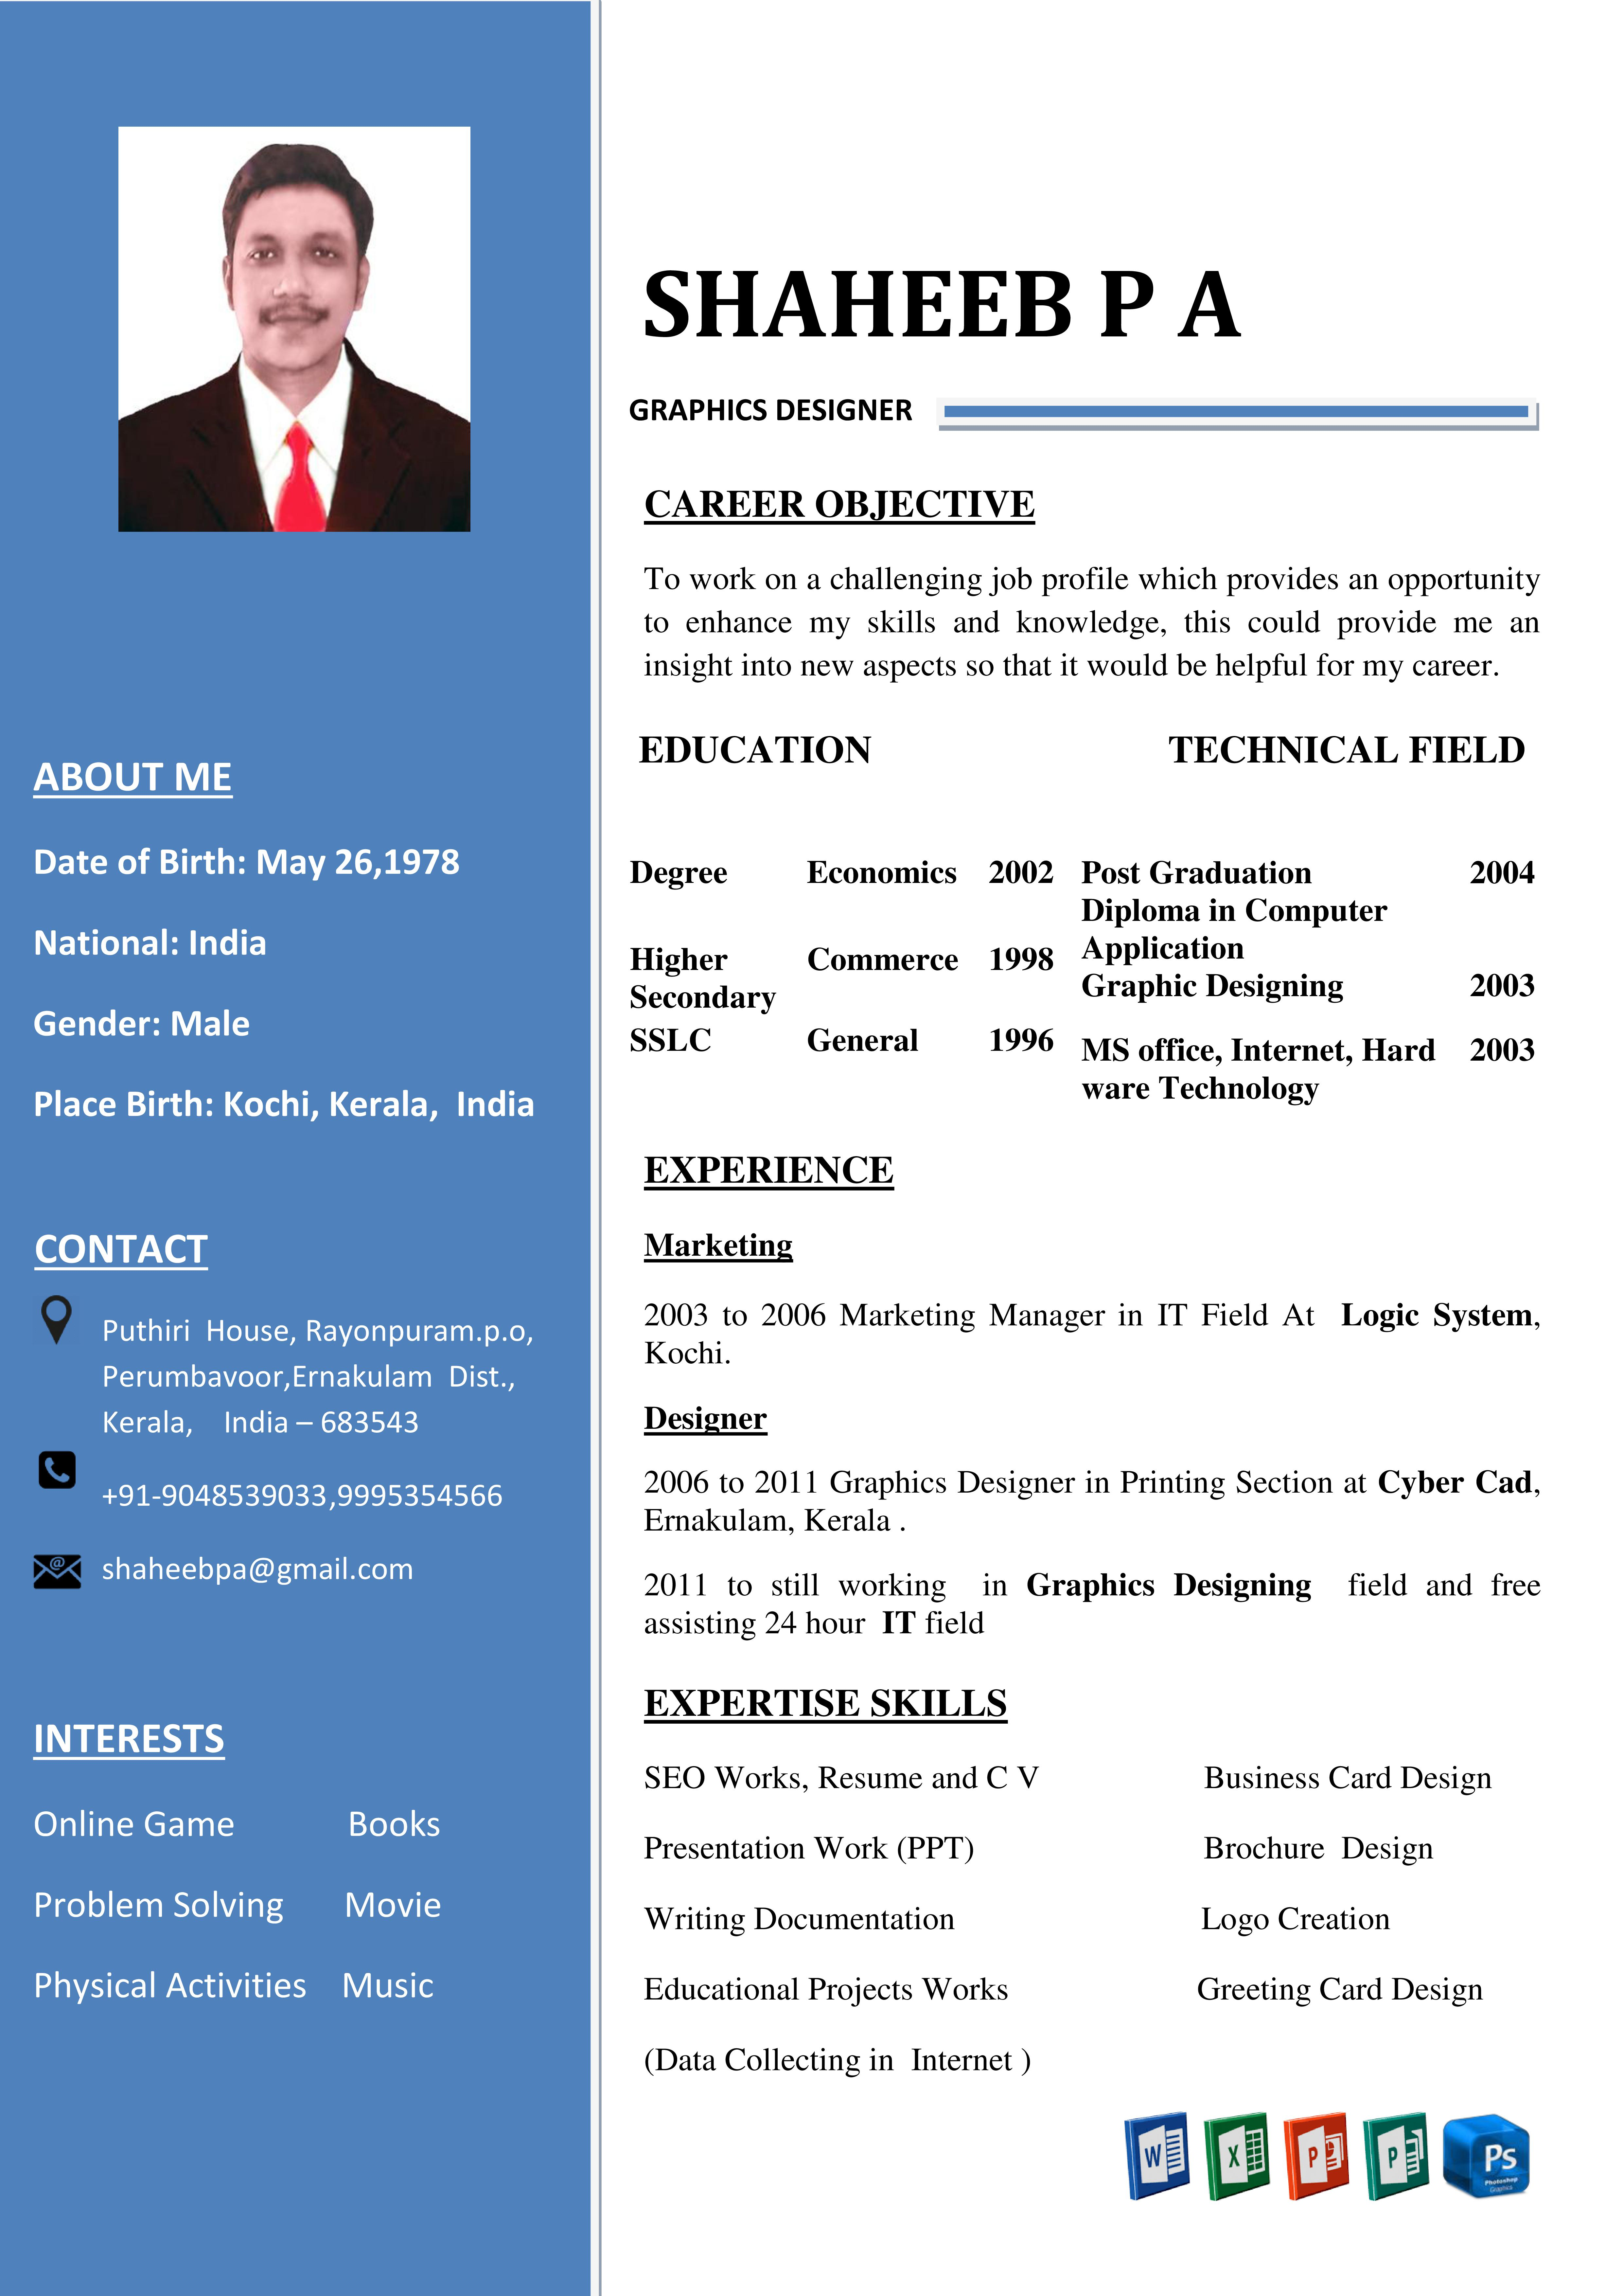 Resume & CV Different Type - Each Page 1